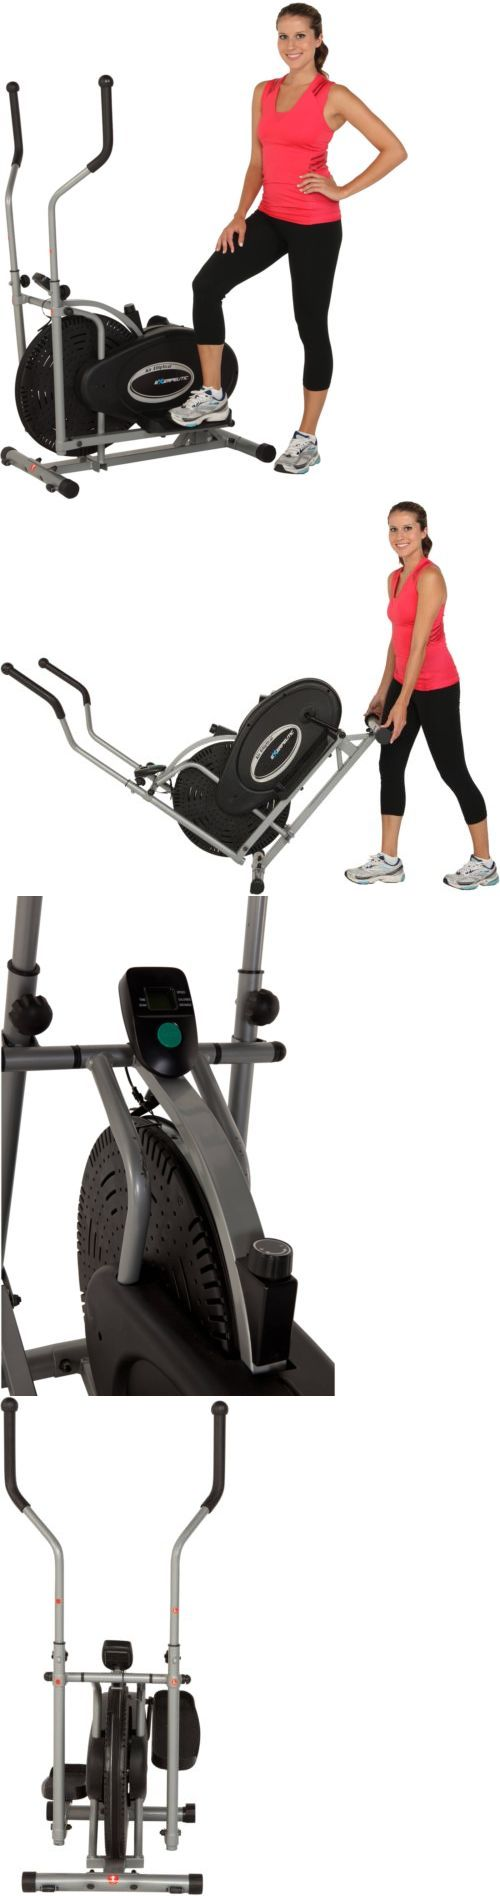 Ellipticals 72602: Exerpeutic Air Elliptical Workout Exercise Bike Fitness Trainer Home Gym Machine -> BUY IT NOW ONLY: $101.08 on eBay!